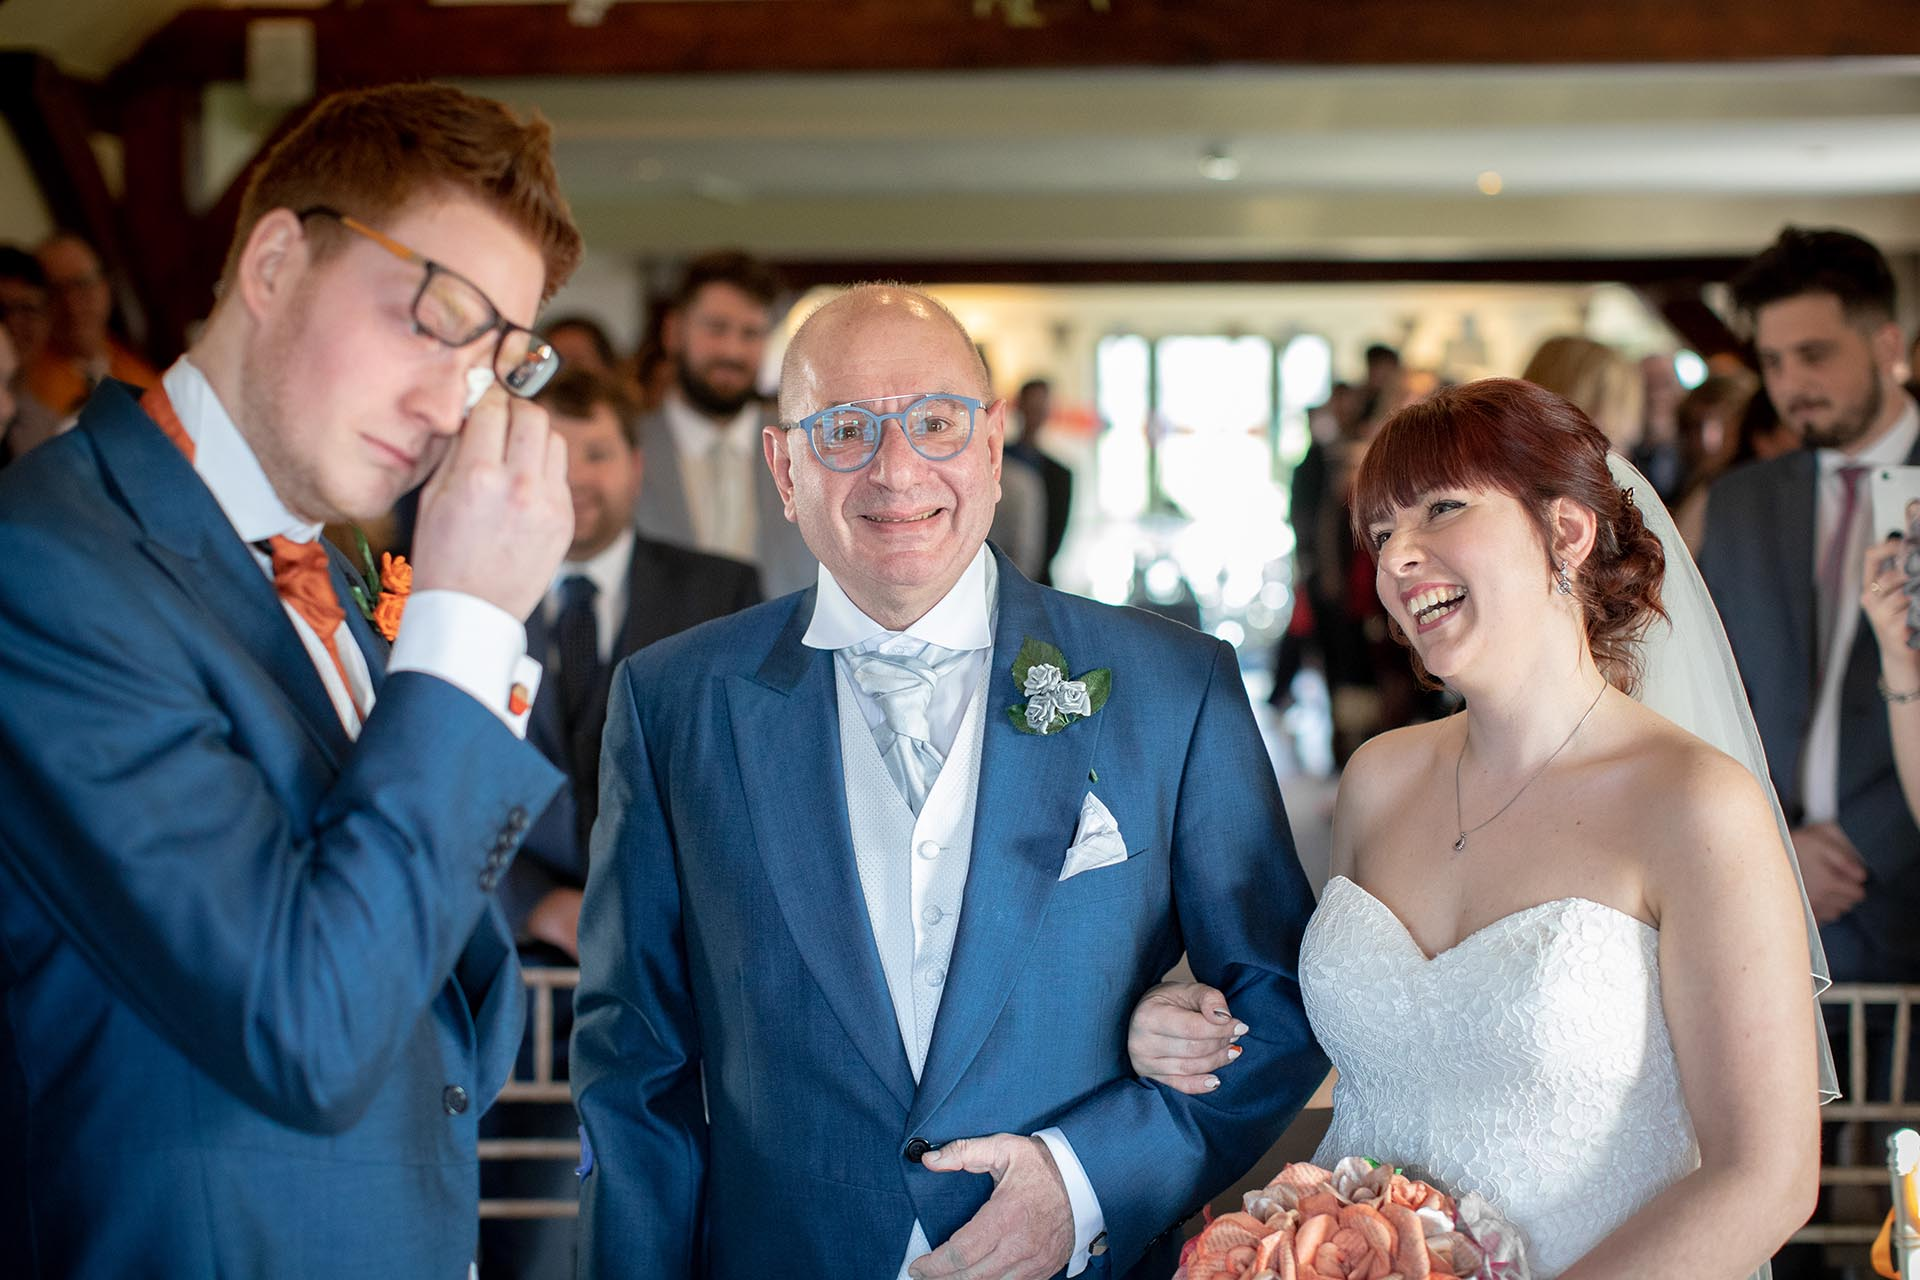 Reportage Essex wedding photography showing an emotional groom